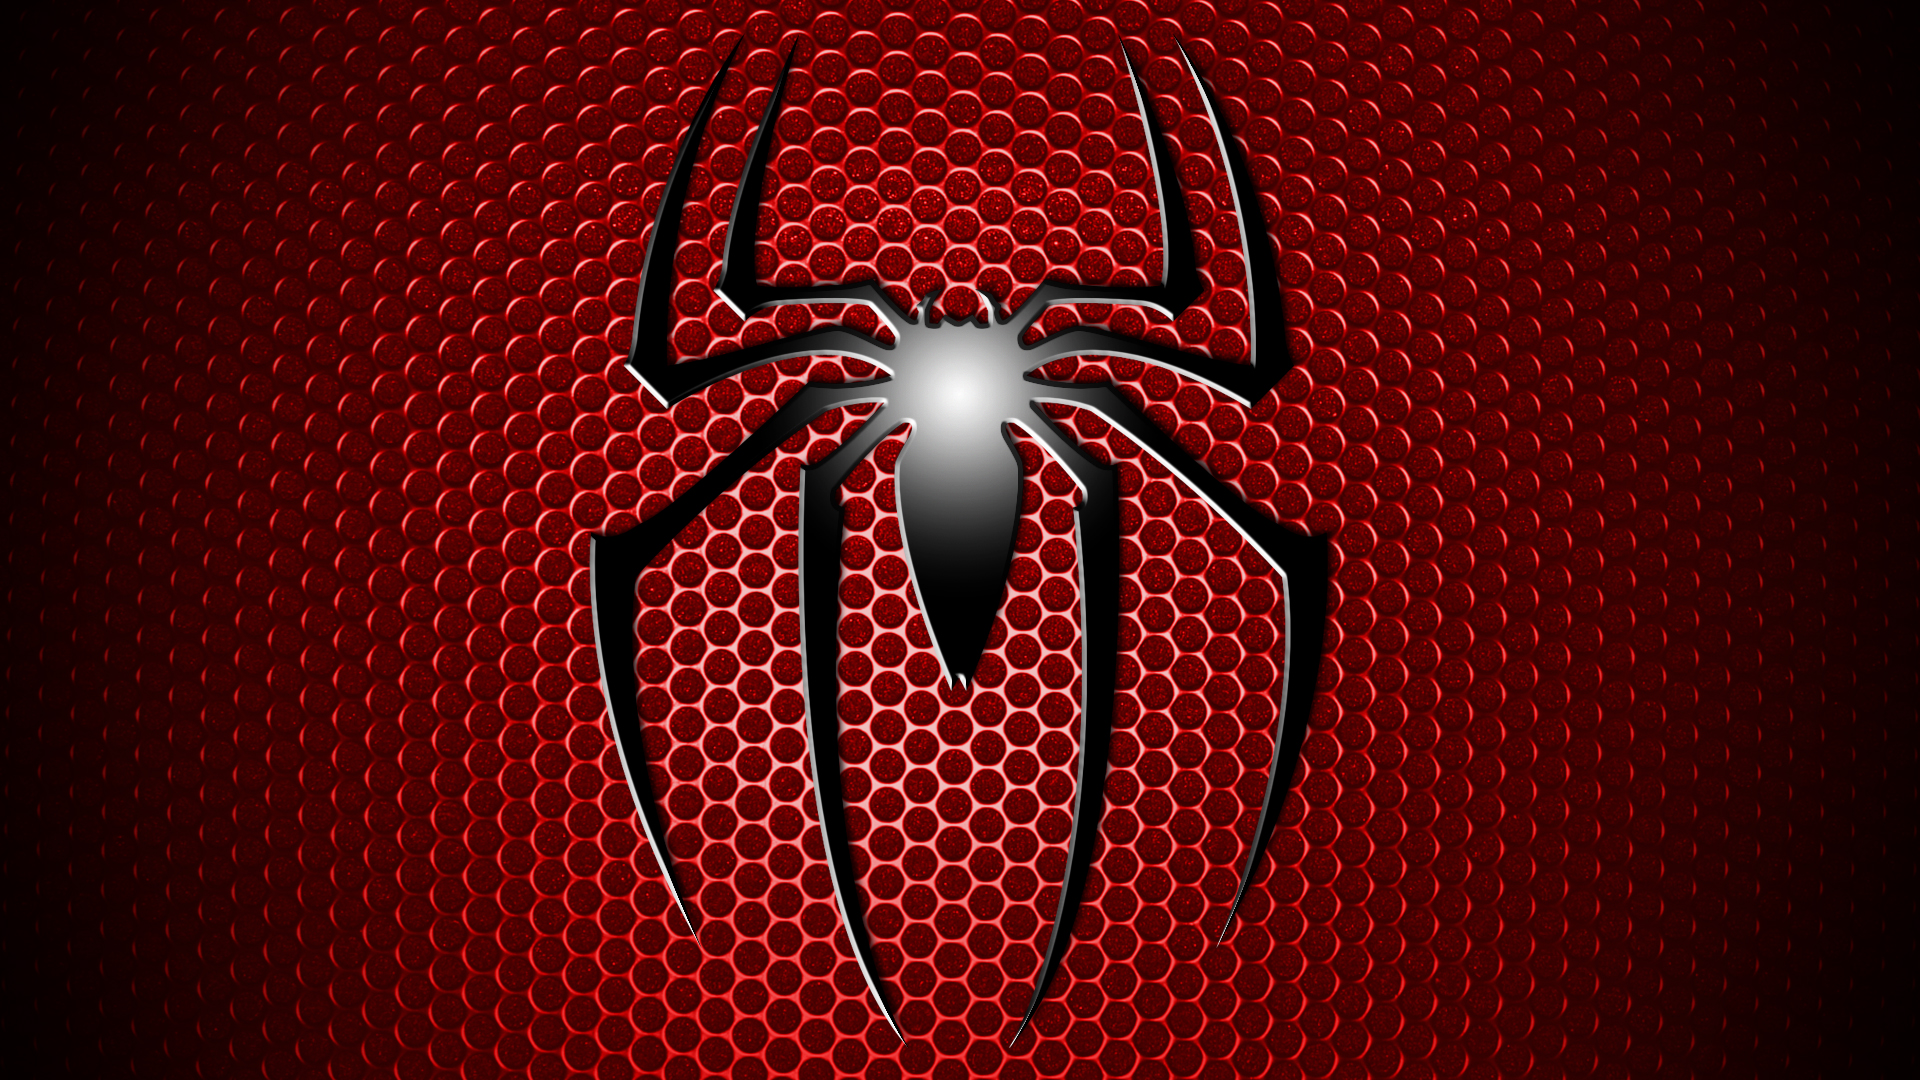 Spiderman Logo HD #6998206